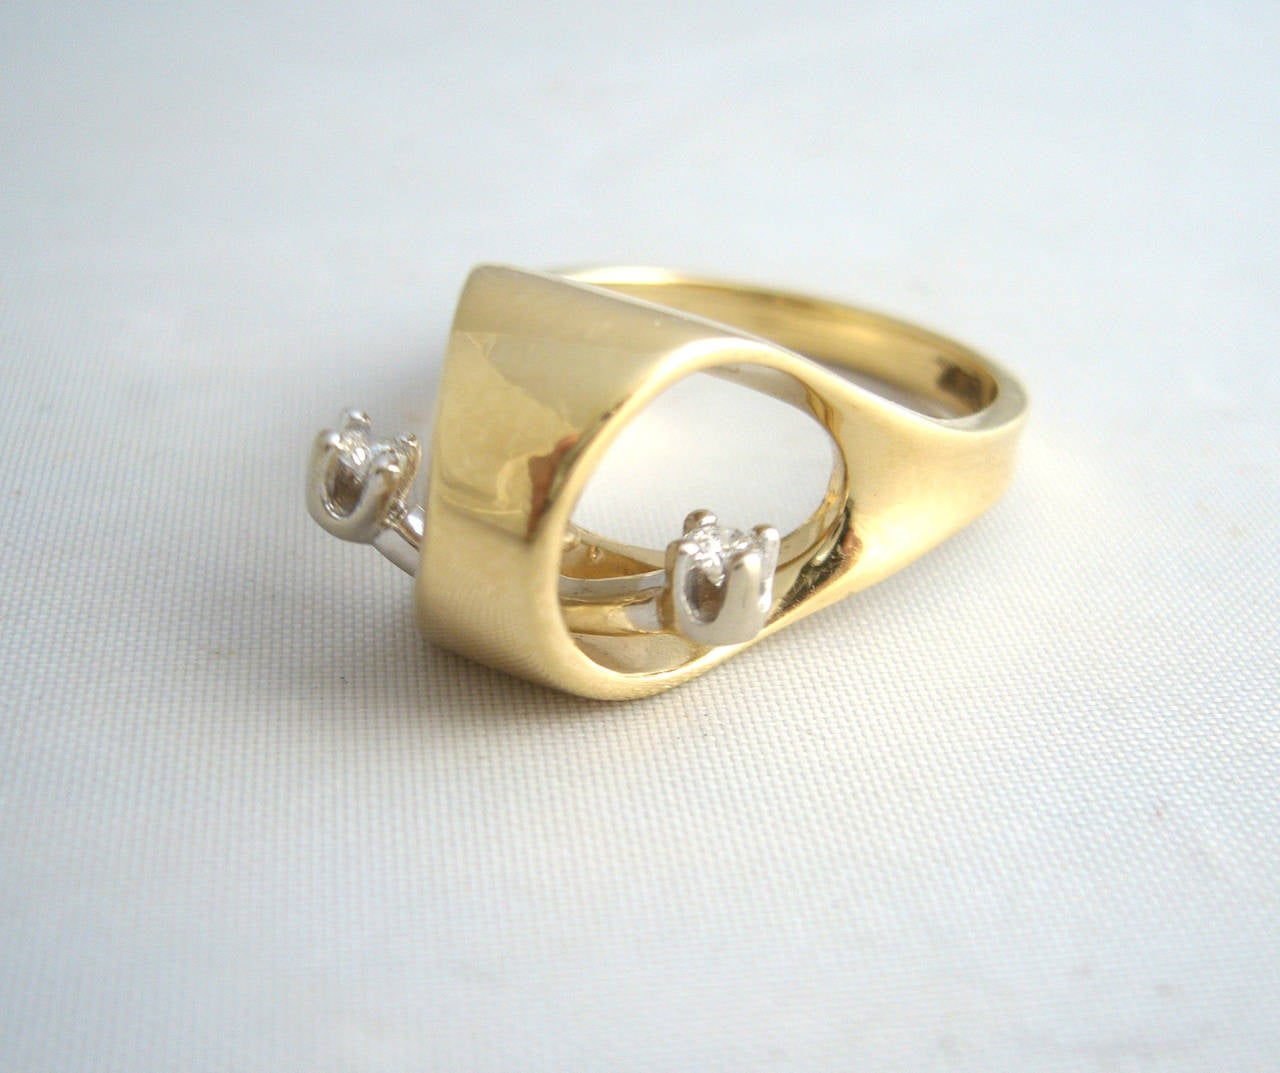 Gold Diamond Kinetic Modernist Ring In Excellent Condition For Sale In Los Angeles, CA